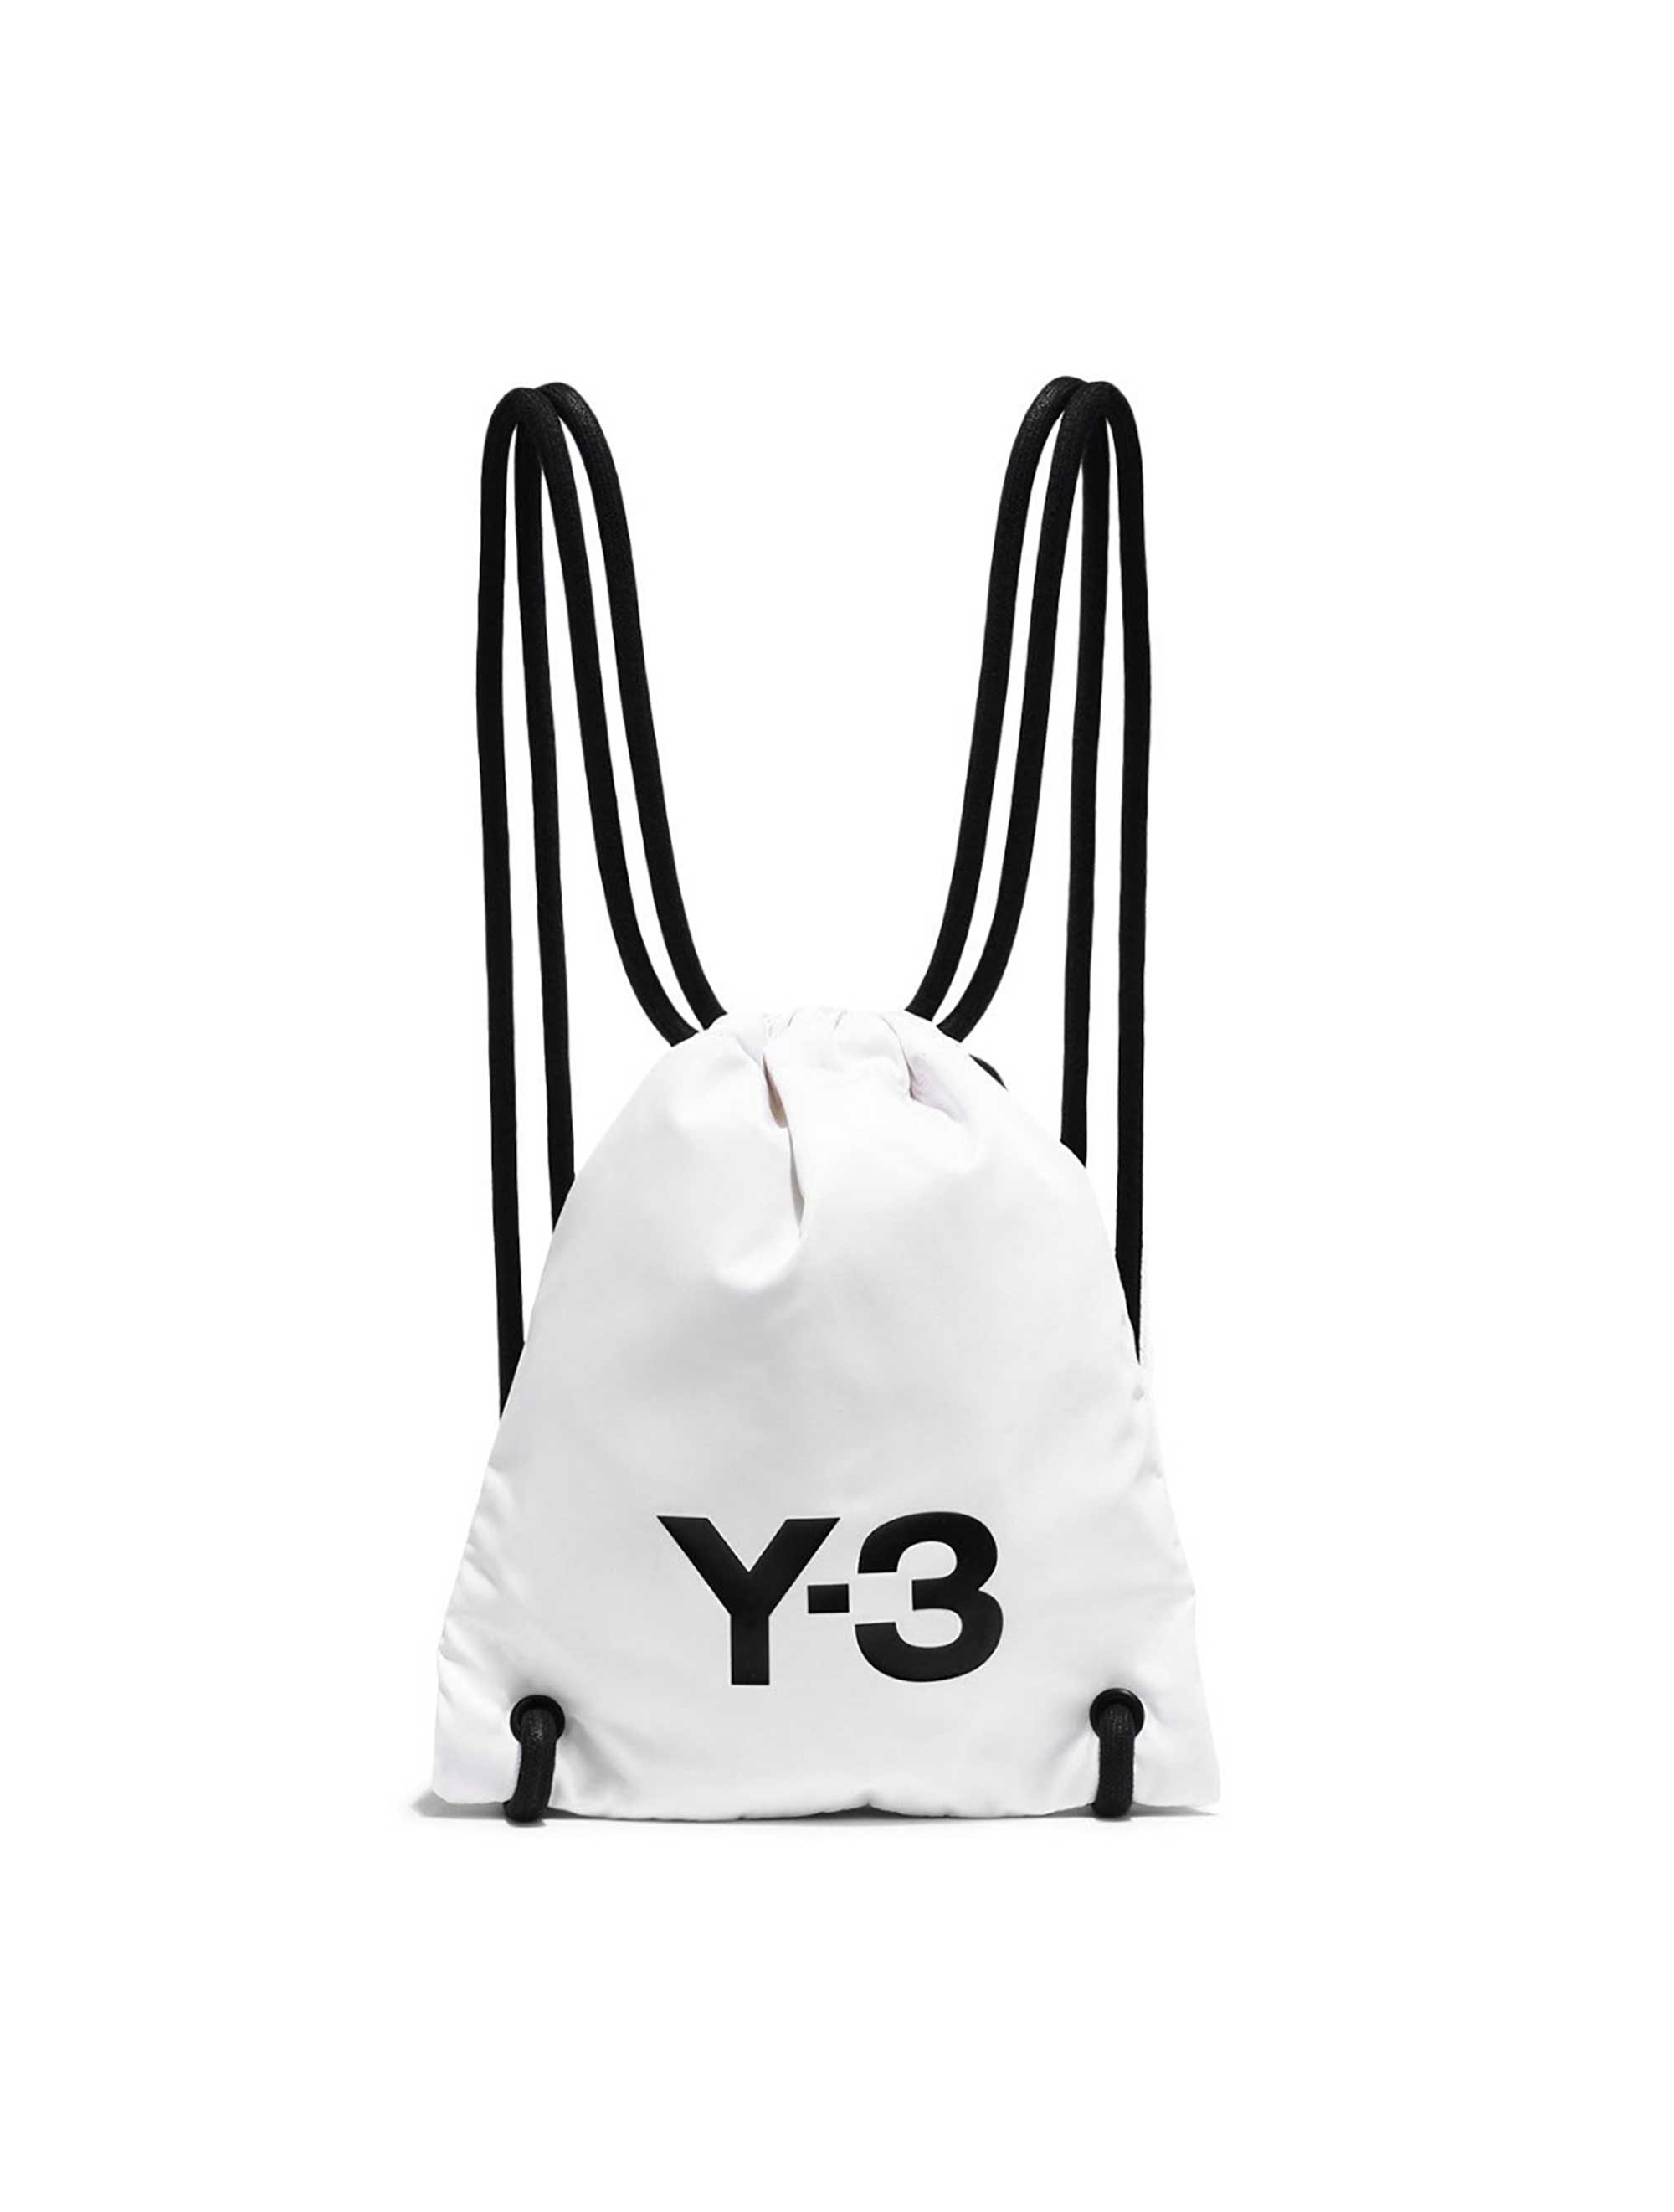 9494dfcc200b Mimma Ninni – Luxury and Fashion Shopping. Adidas Y-3 Mini Gym Bag ...